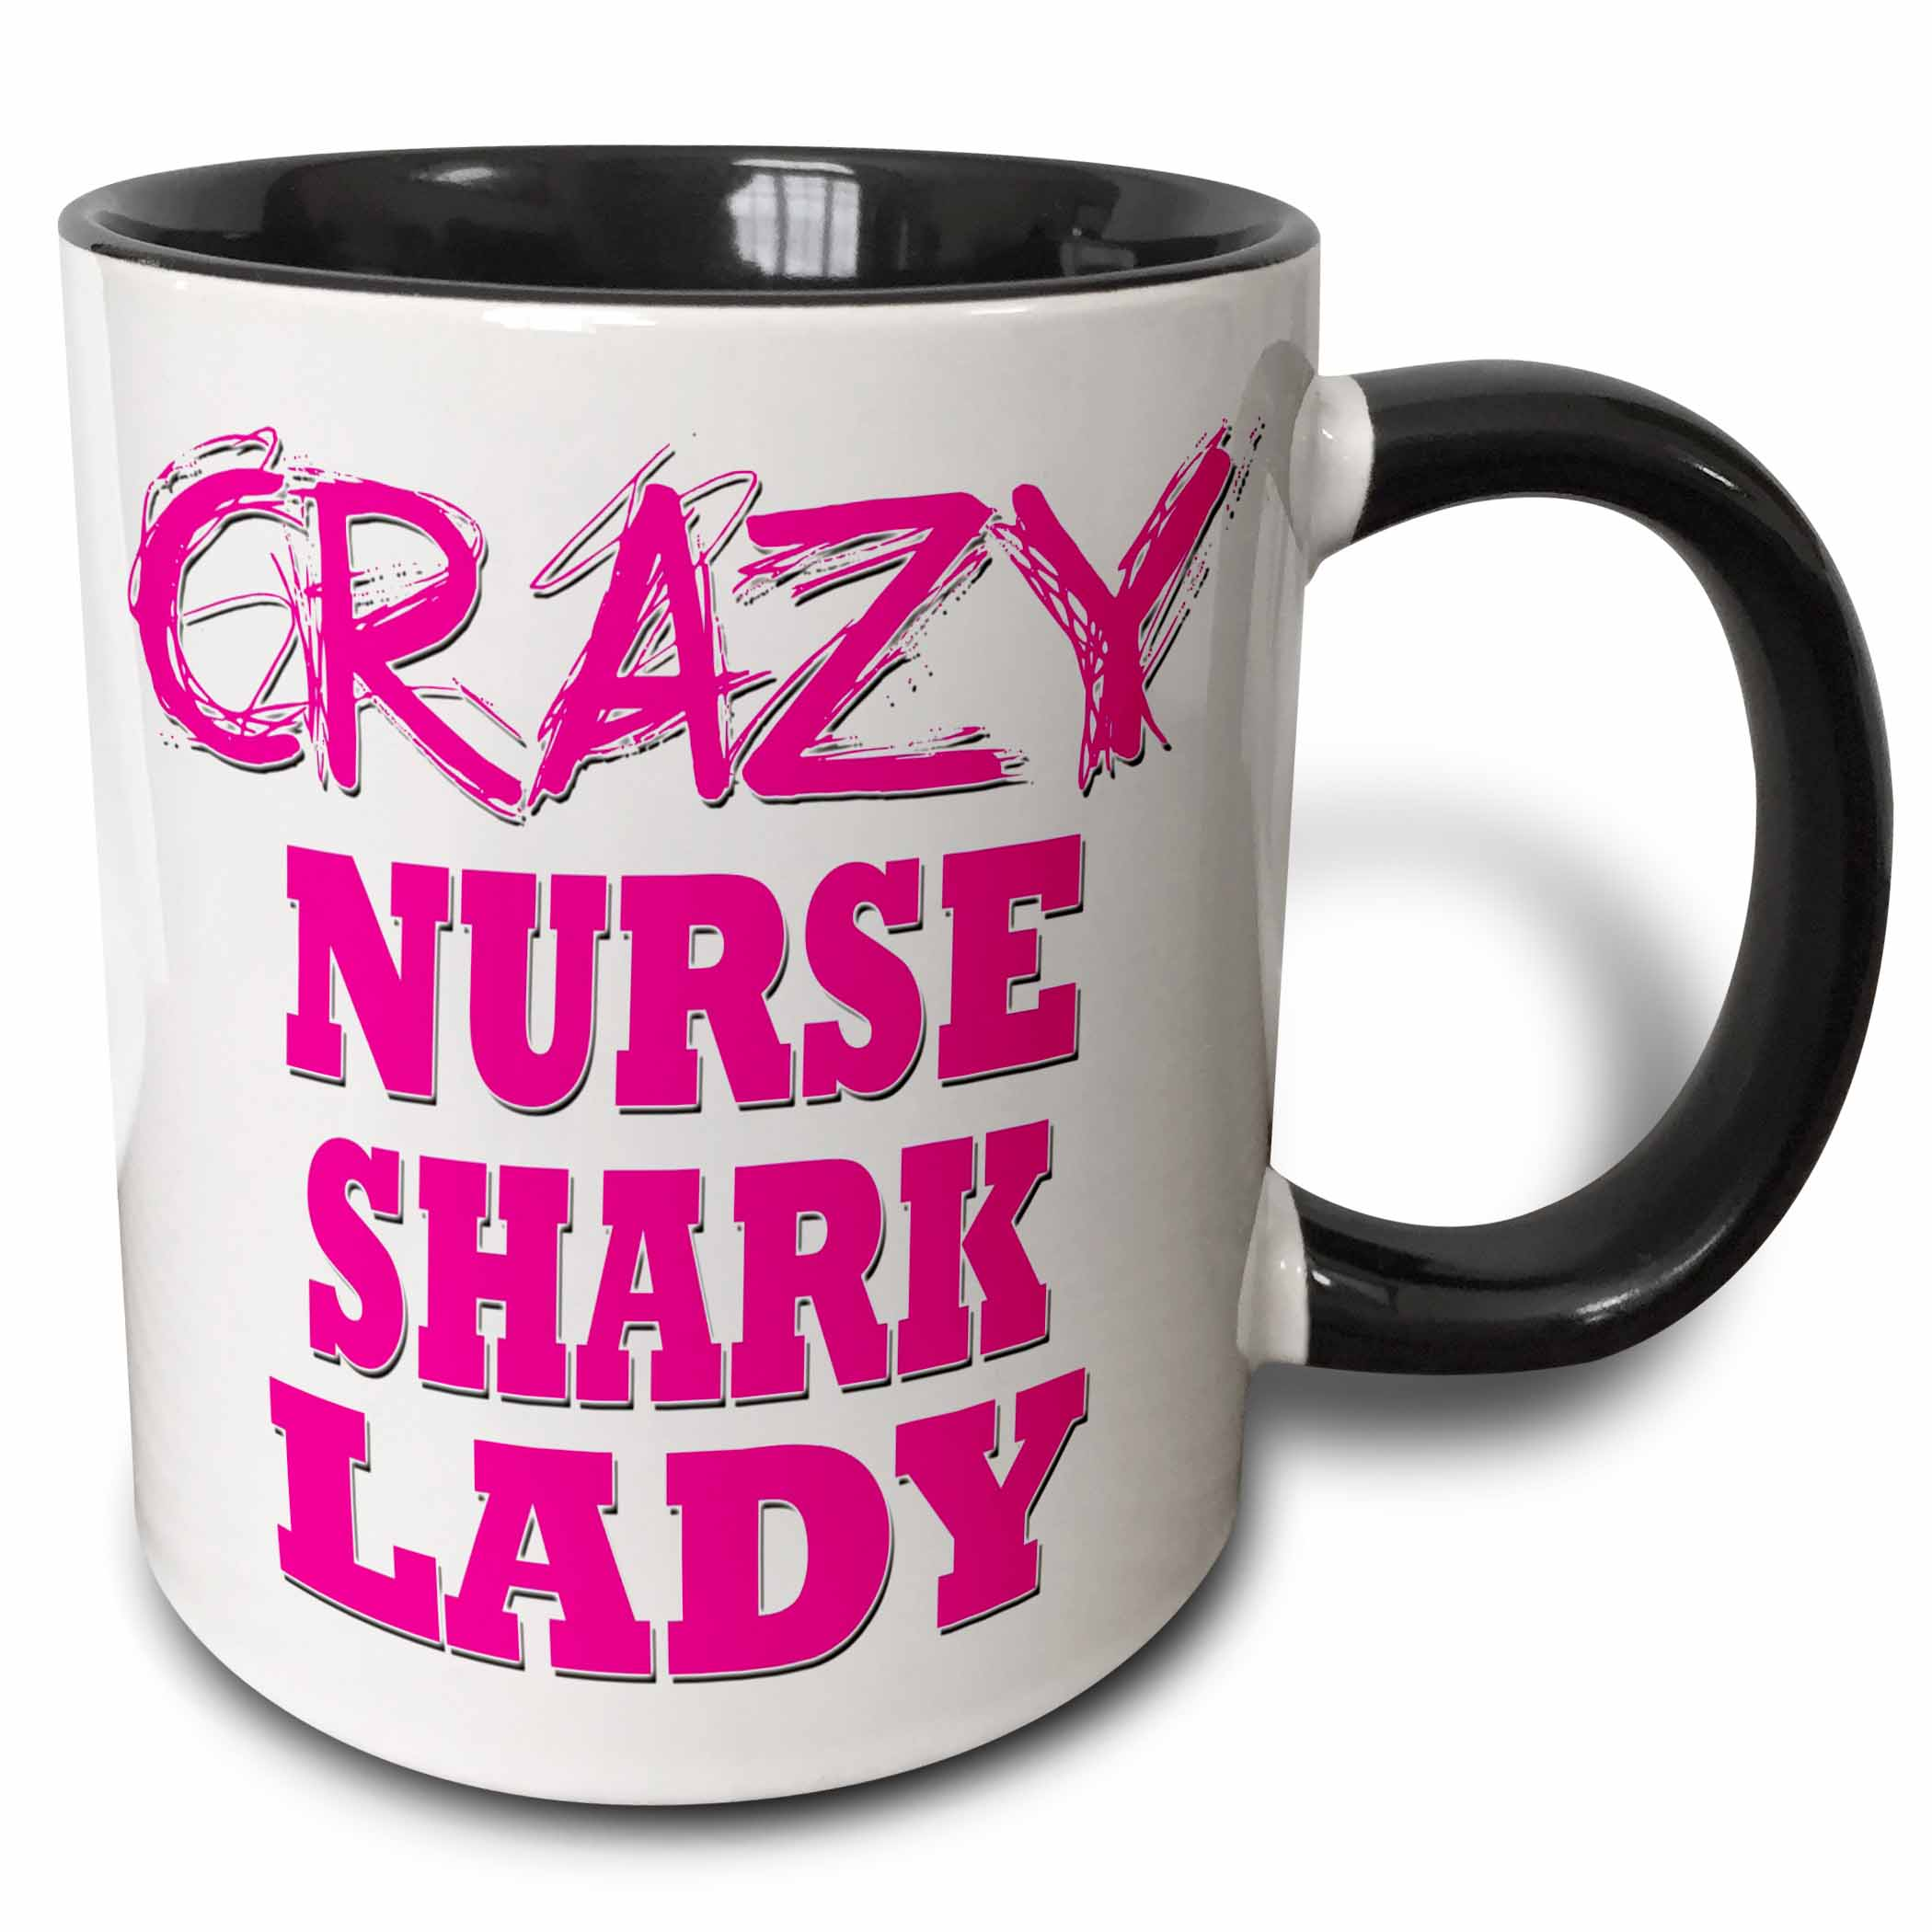 3dRose Crazy Nurse Shark Lady - Two Tone Black Mug, 11-ounce